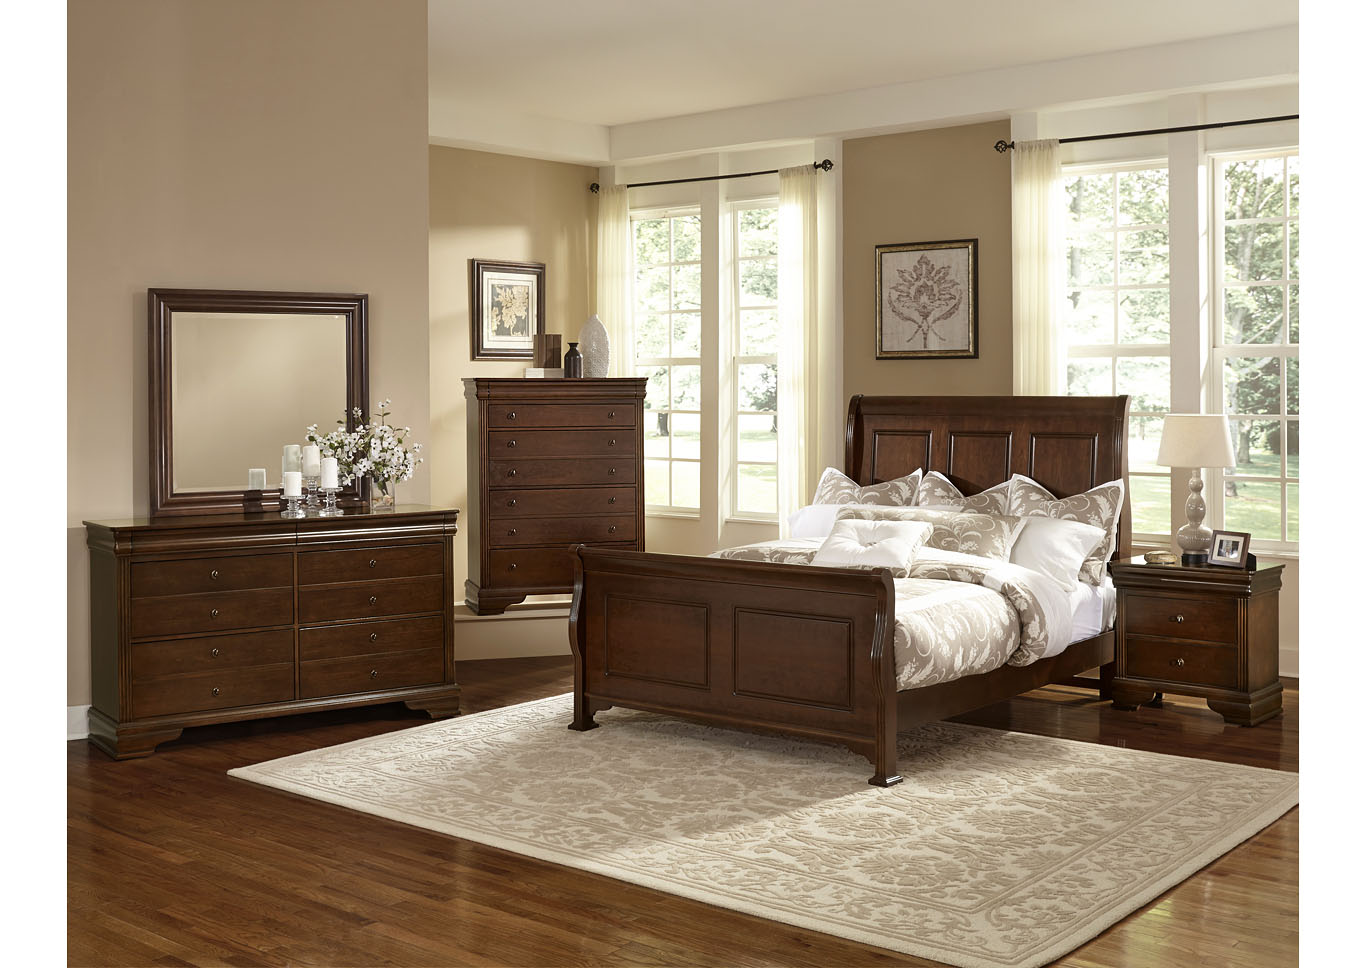 French Market French Cherry King Poster Bed w/ Dresser, Mirror, Drawer Chest and Nightstand,Vaughan-Bassett